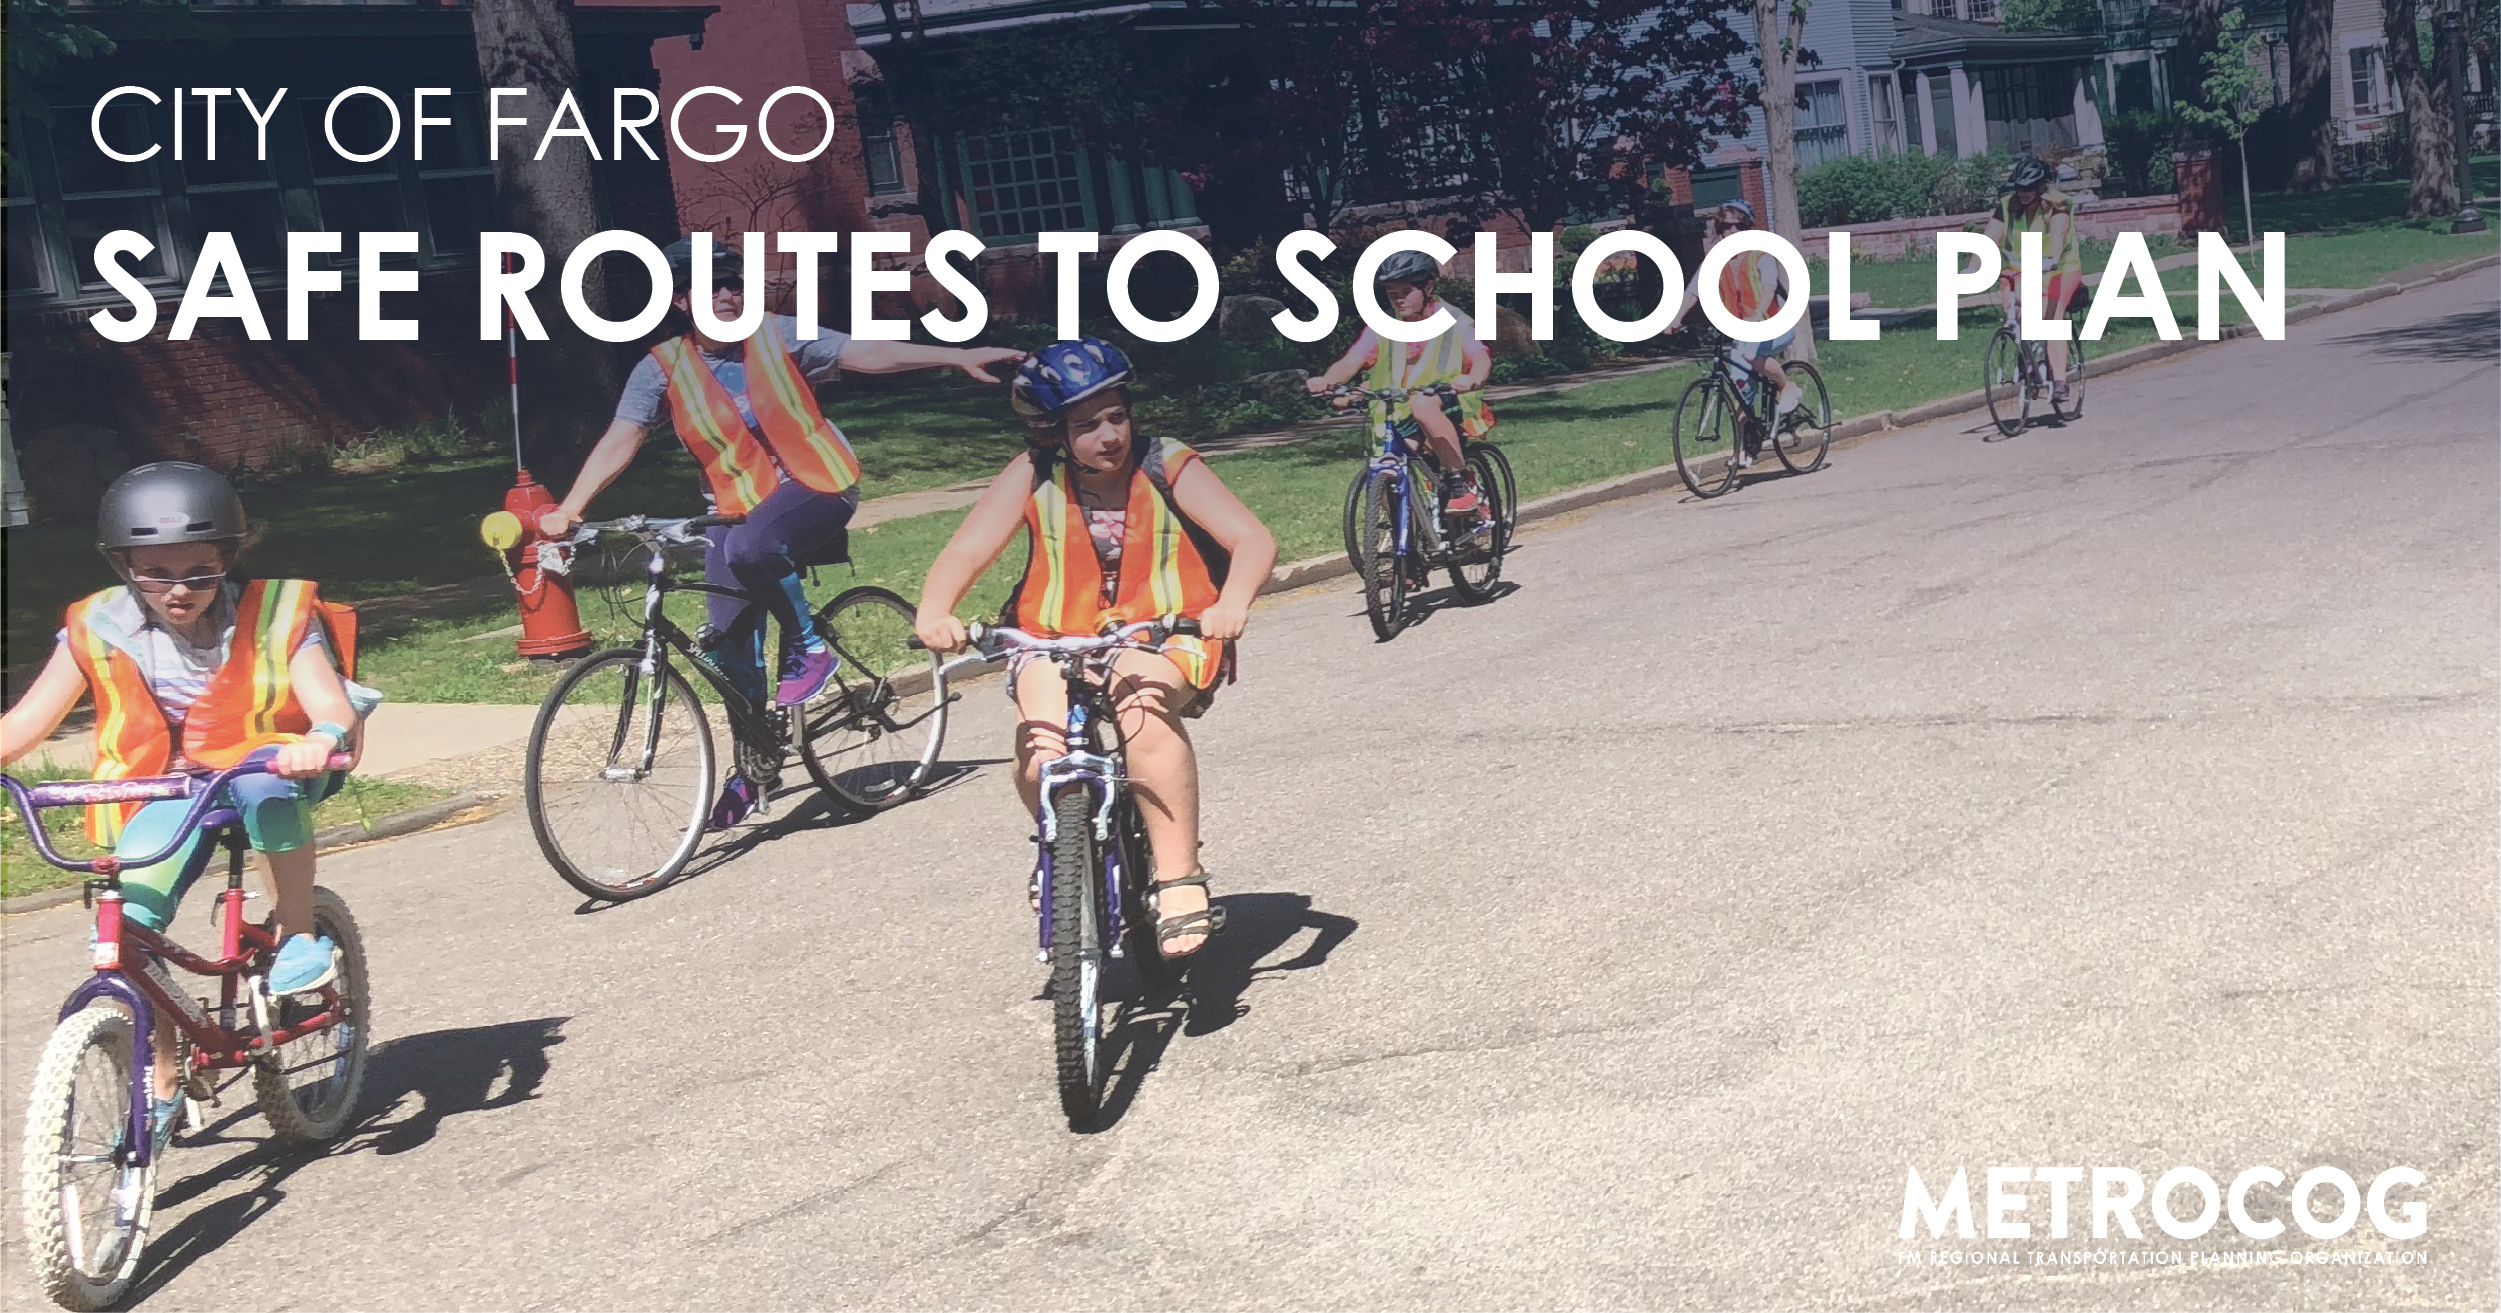 City of Fargo Safe Routes to School Plan